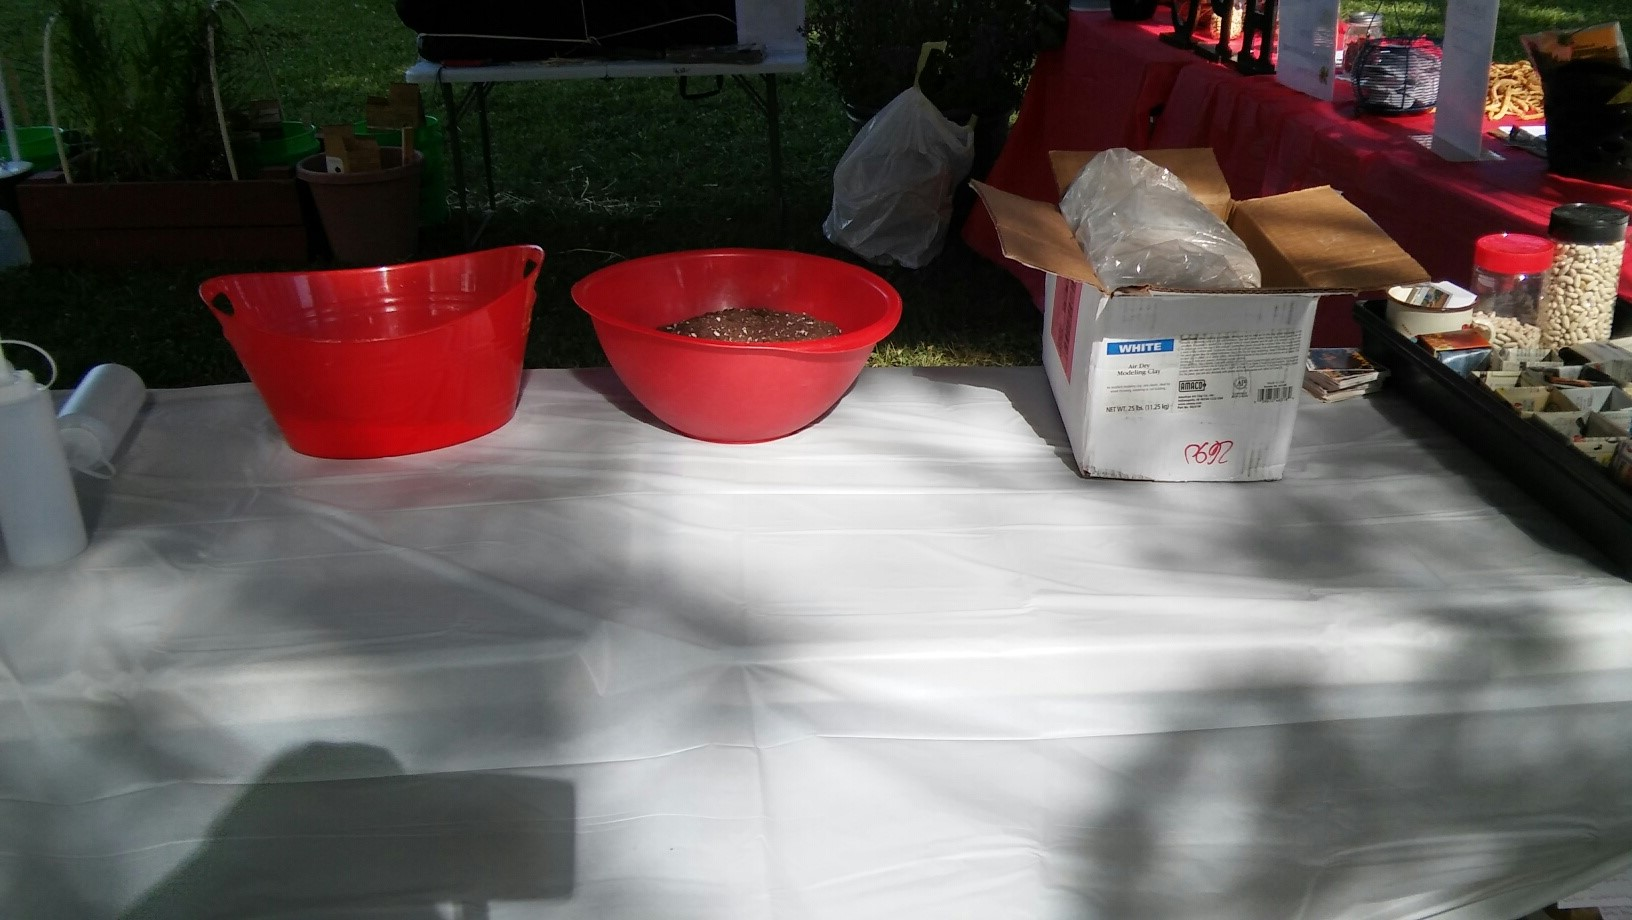 Setting up the seed tape and seed ball demonstration table at The Westgate Summer Jam 2016 - #2.jpg